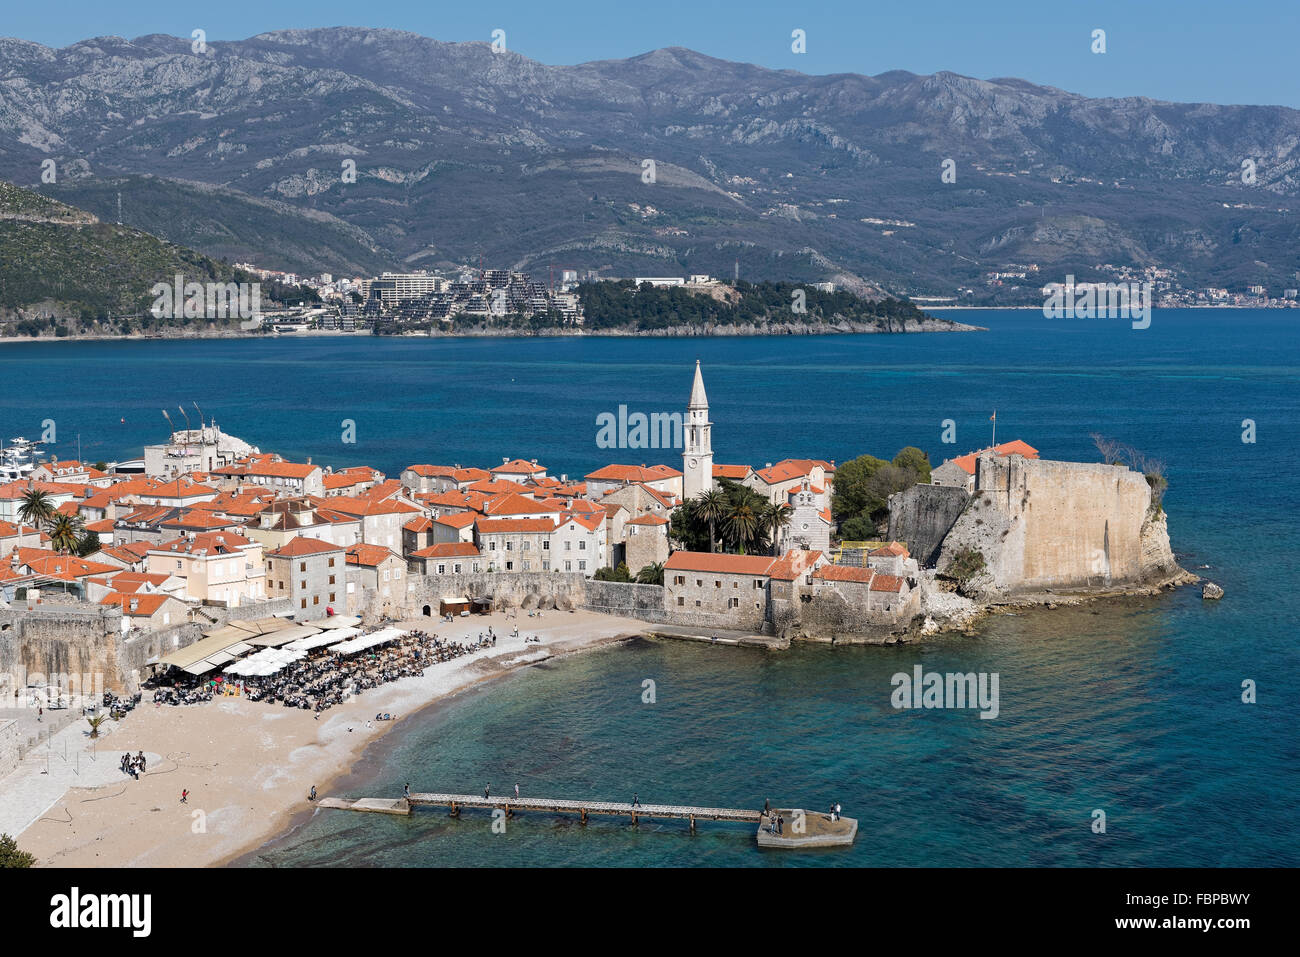 Part of the fortified old town of Budva in Montenegro Stock Photo